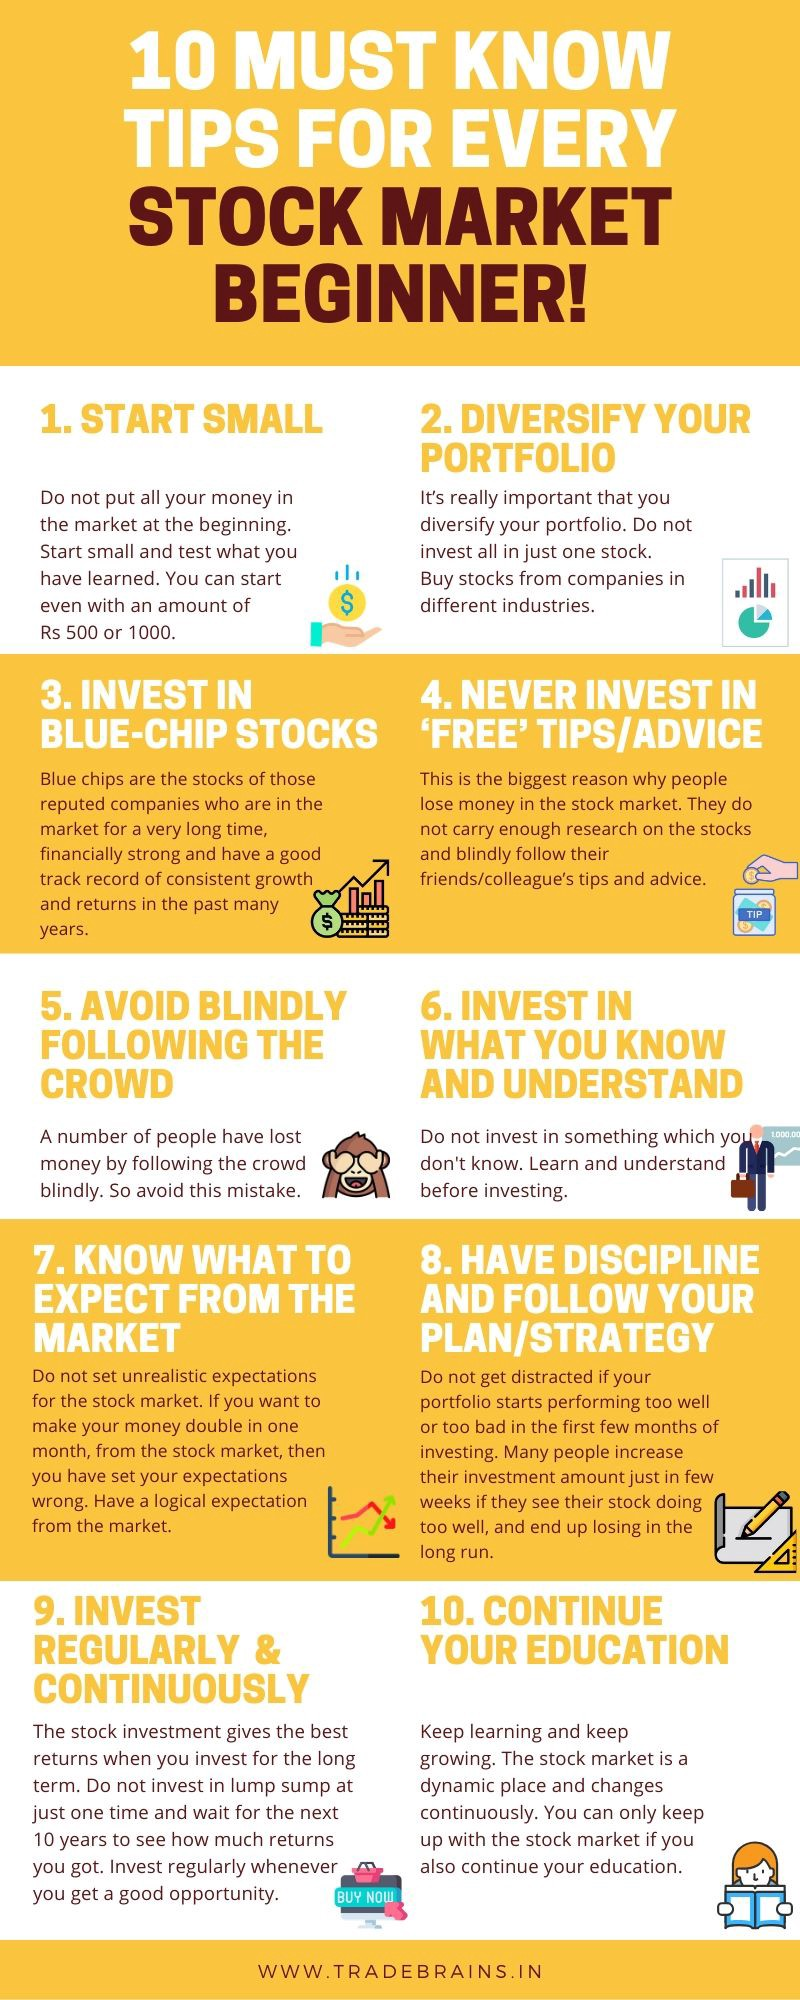 Tips For Every Stock Market Beginner